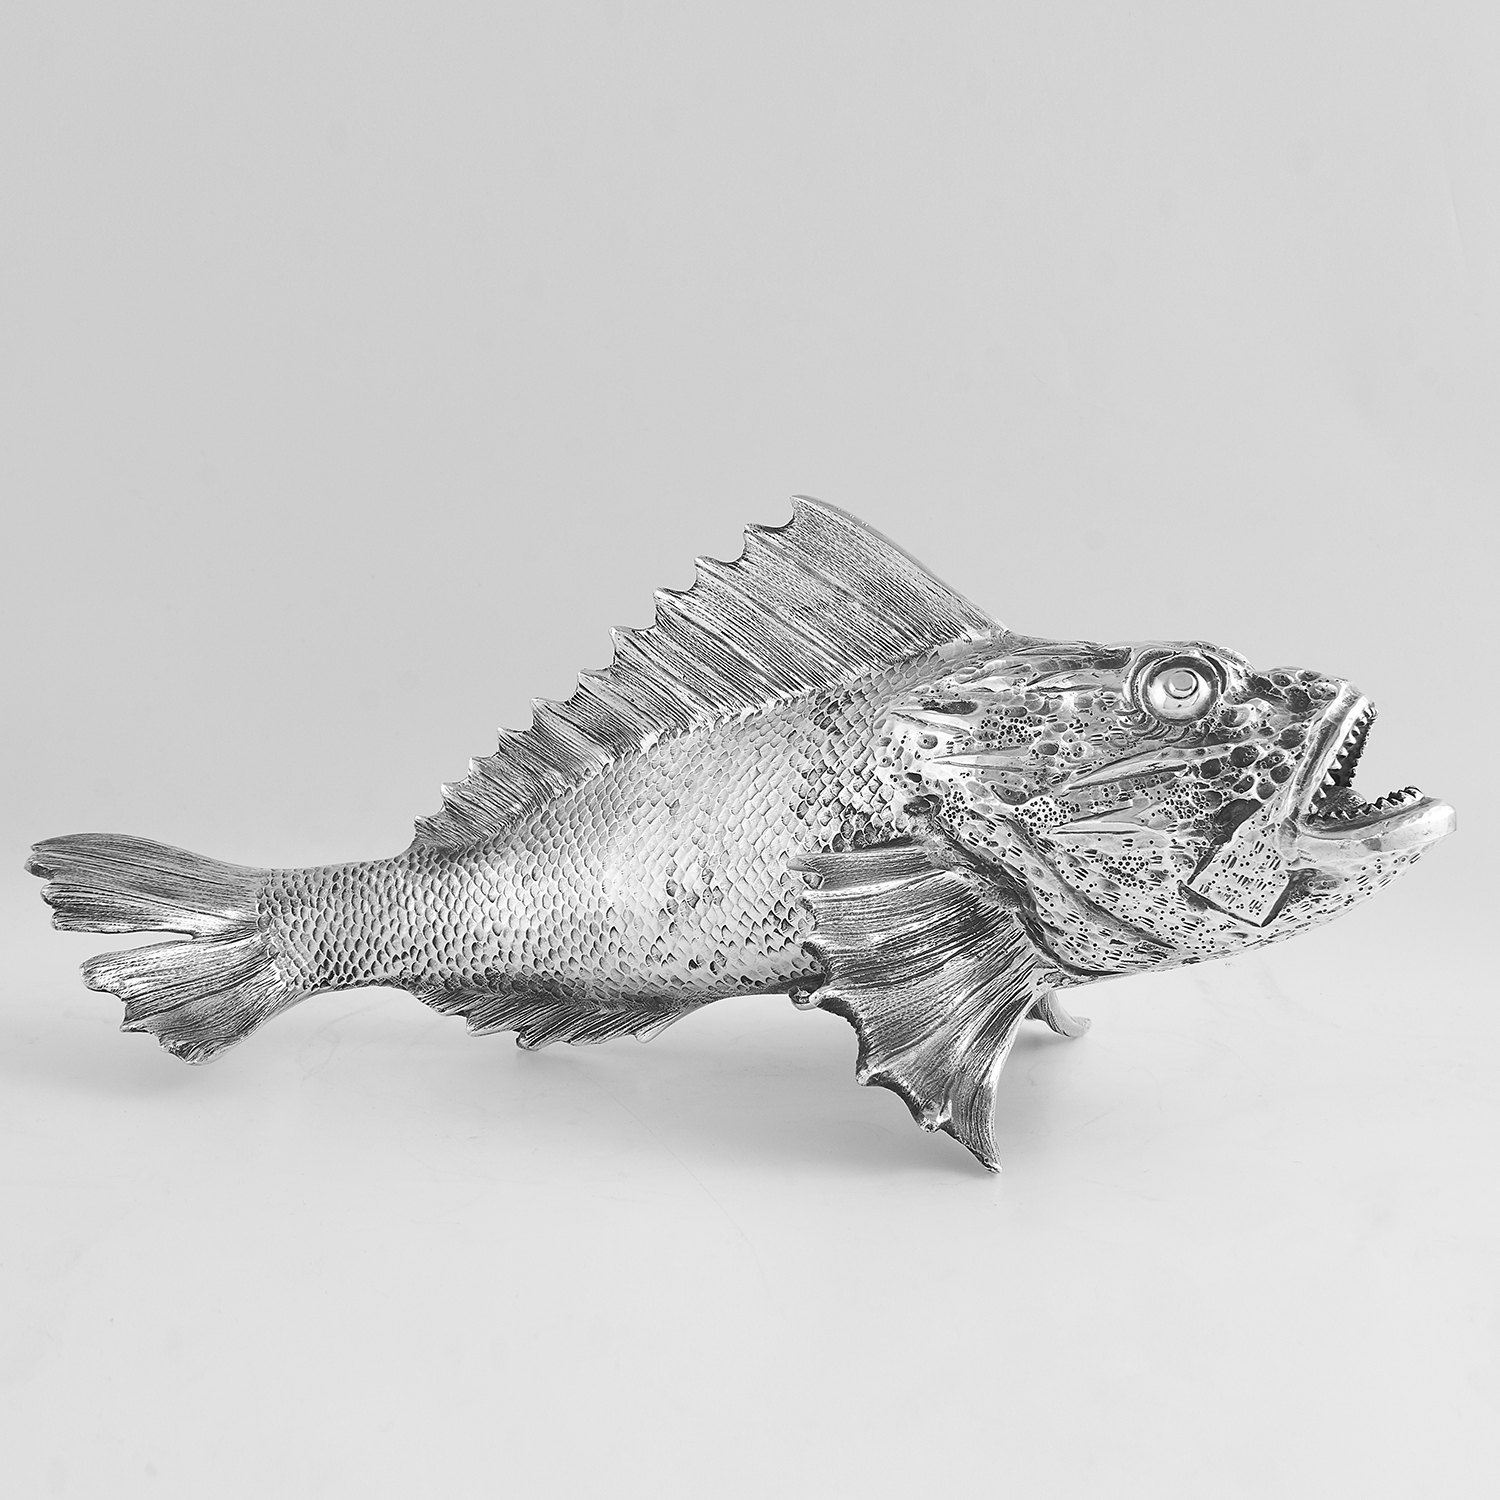 VINTAGE ITALIAN SILVER FISH STATUE CIRCA 1960 cast to depict a fish in detail, Italian marks, 25.